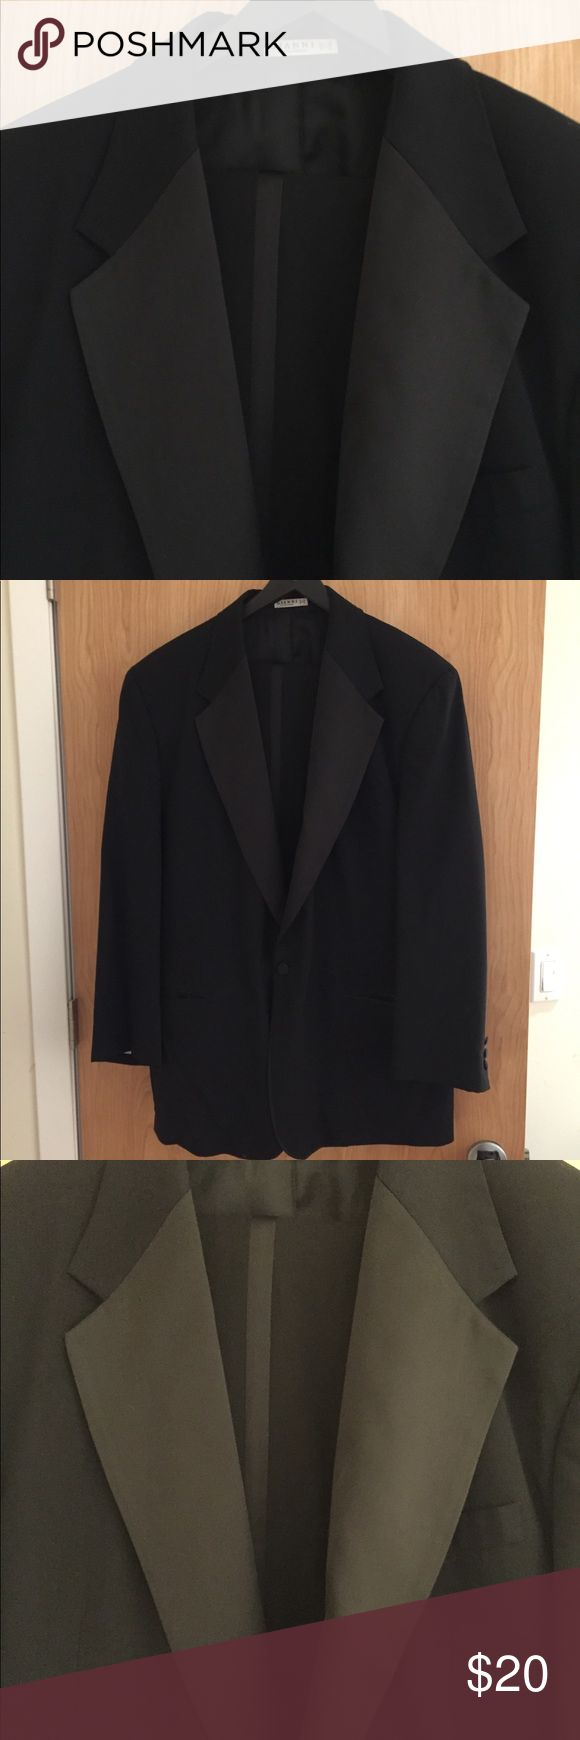 Men's Tuxedo jacket and pants Gianni brand black tuxedo style jacket with pants good condition. Pants 40 L, Jacket 48 long, 100% new wool, Dryclean only. gianni Suits & Blazers Tuxedos